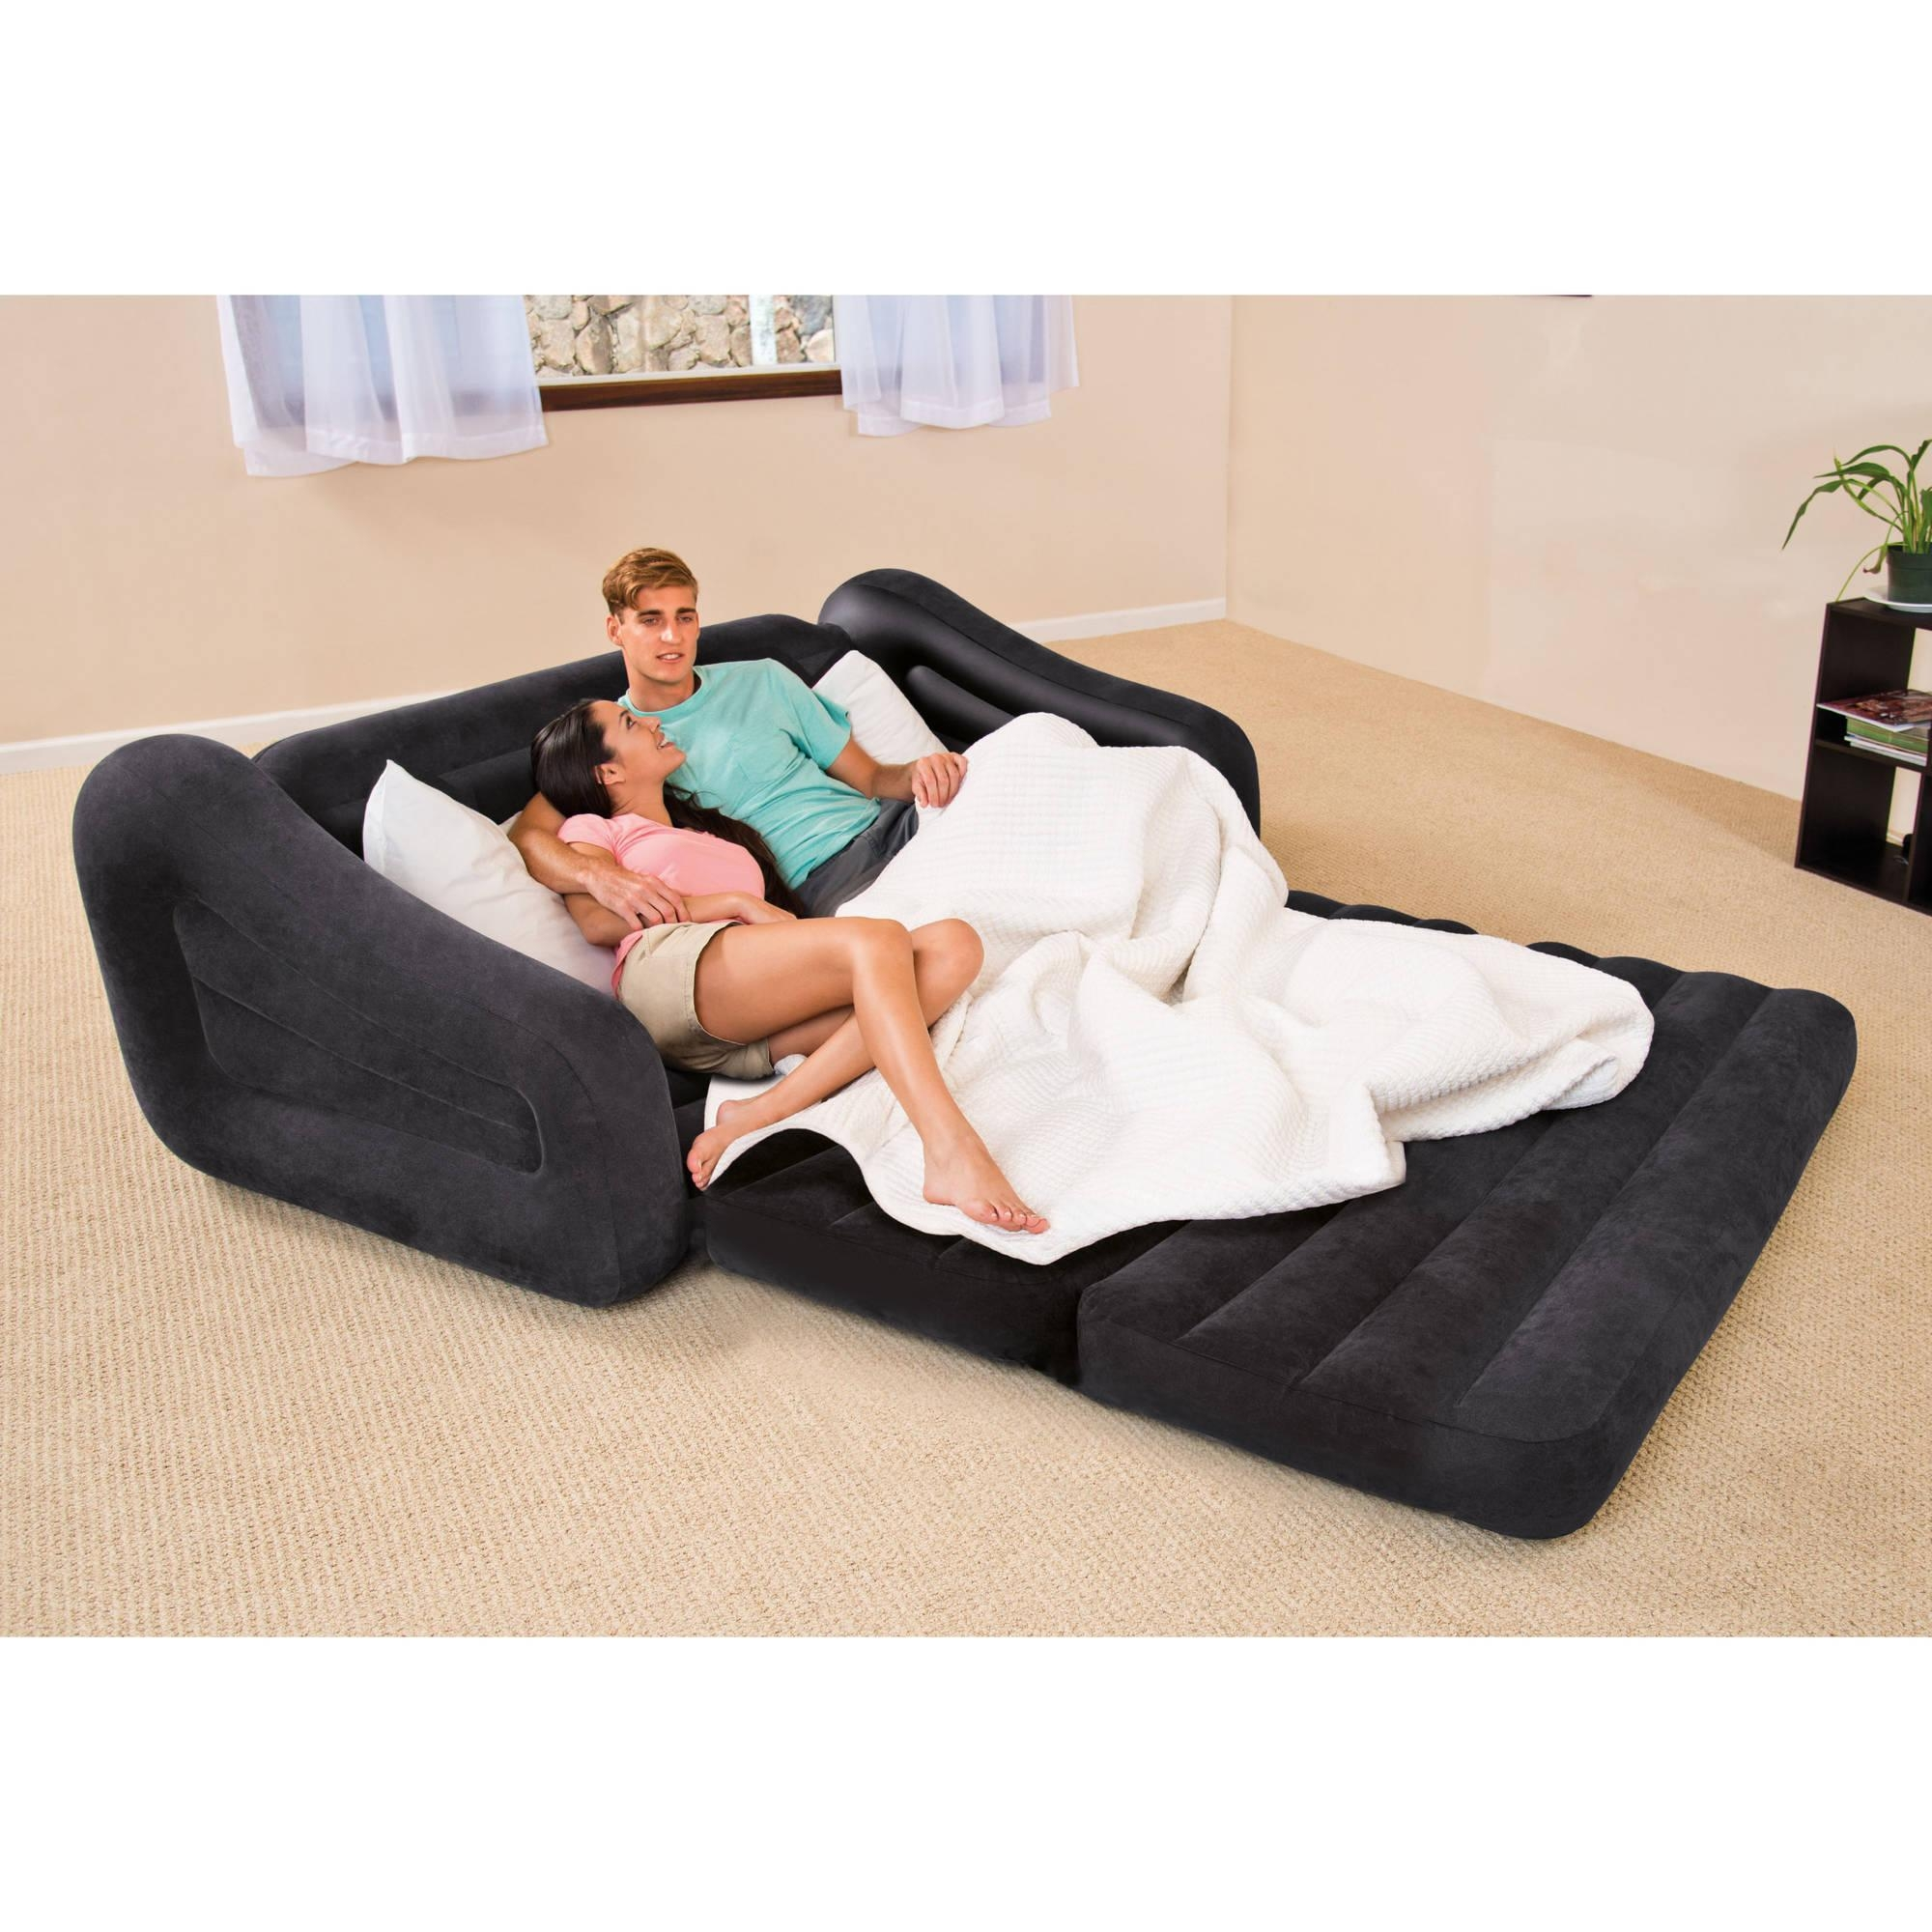 Intex Queen Inflatable Pull Out Sofa Bed – Walmart For Intex Air Sofa Beds (Image 19 of 20)